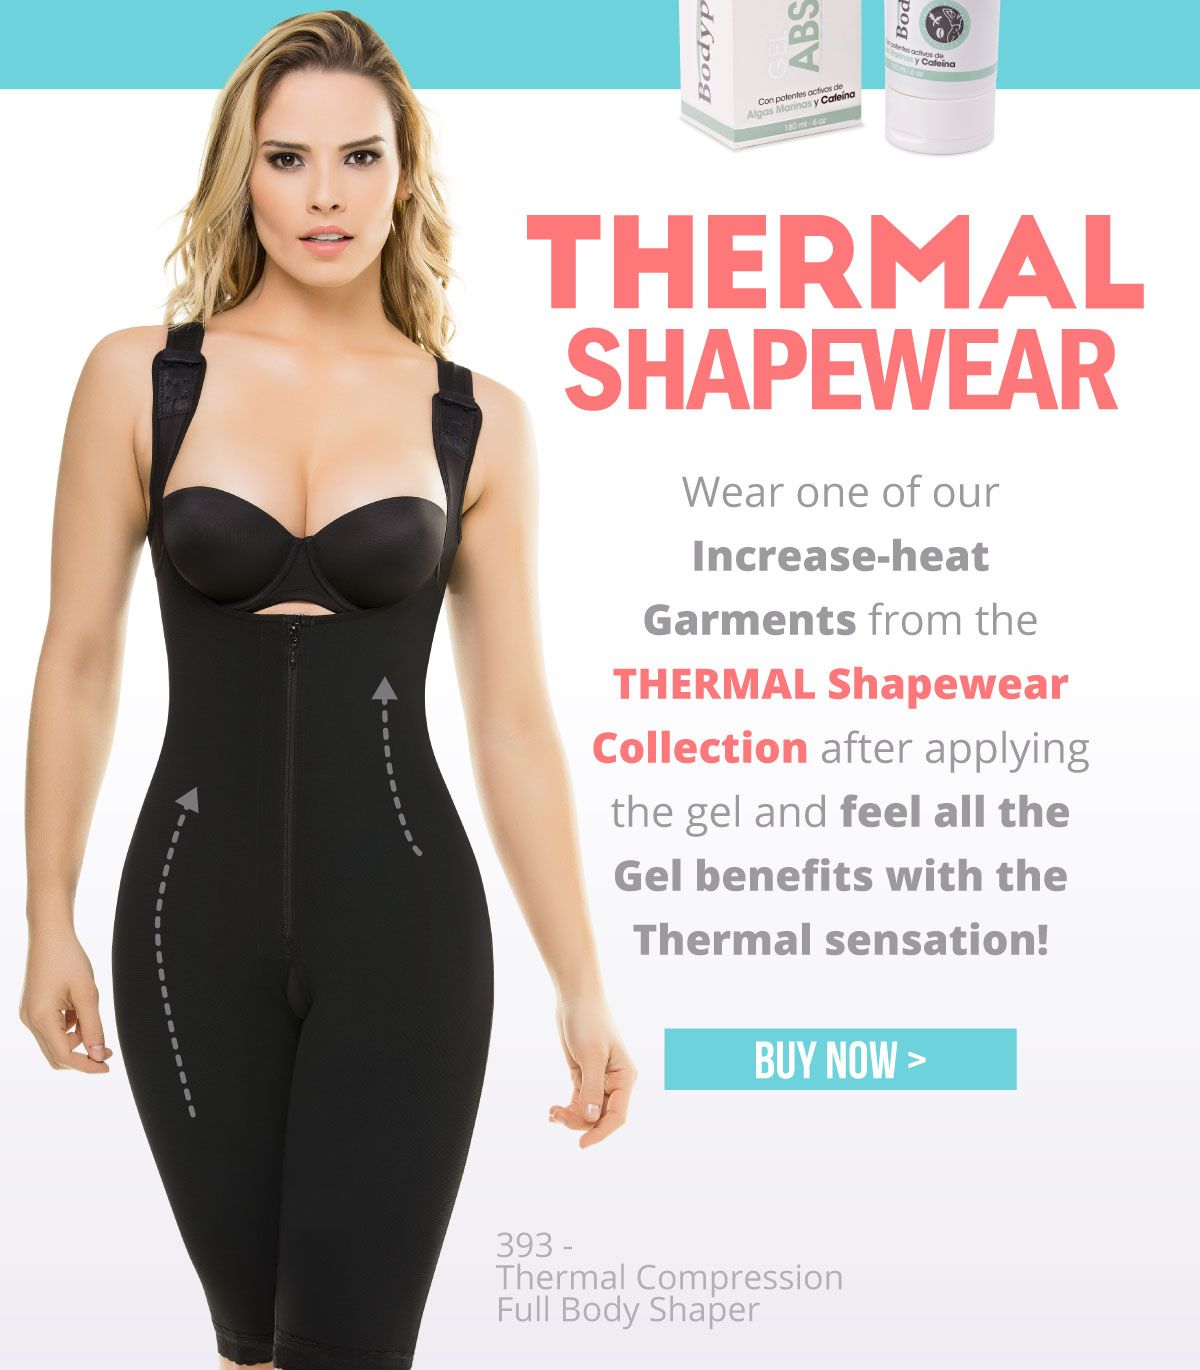 3014 - Body Perfection Absorbent Gel | Shaper's Newsletter